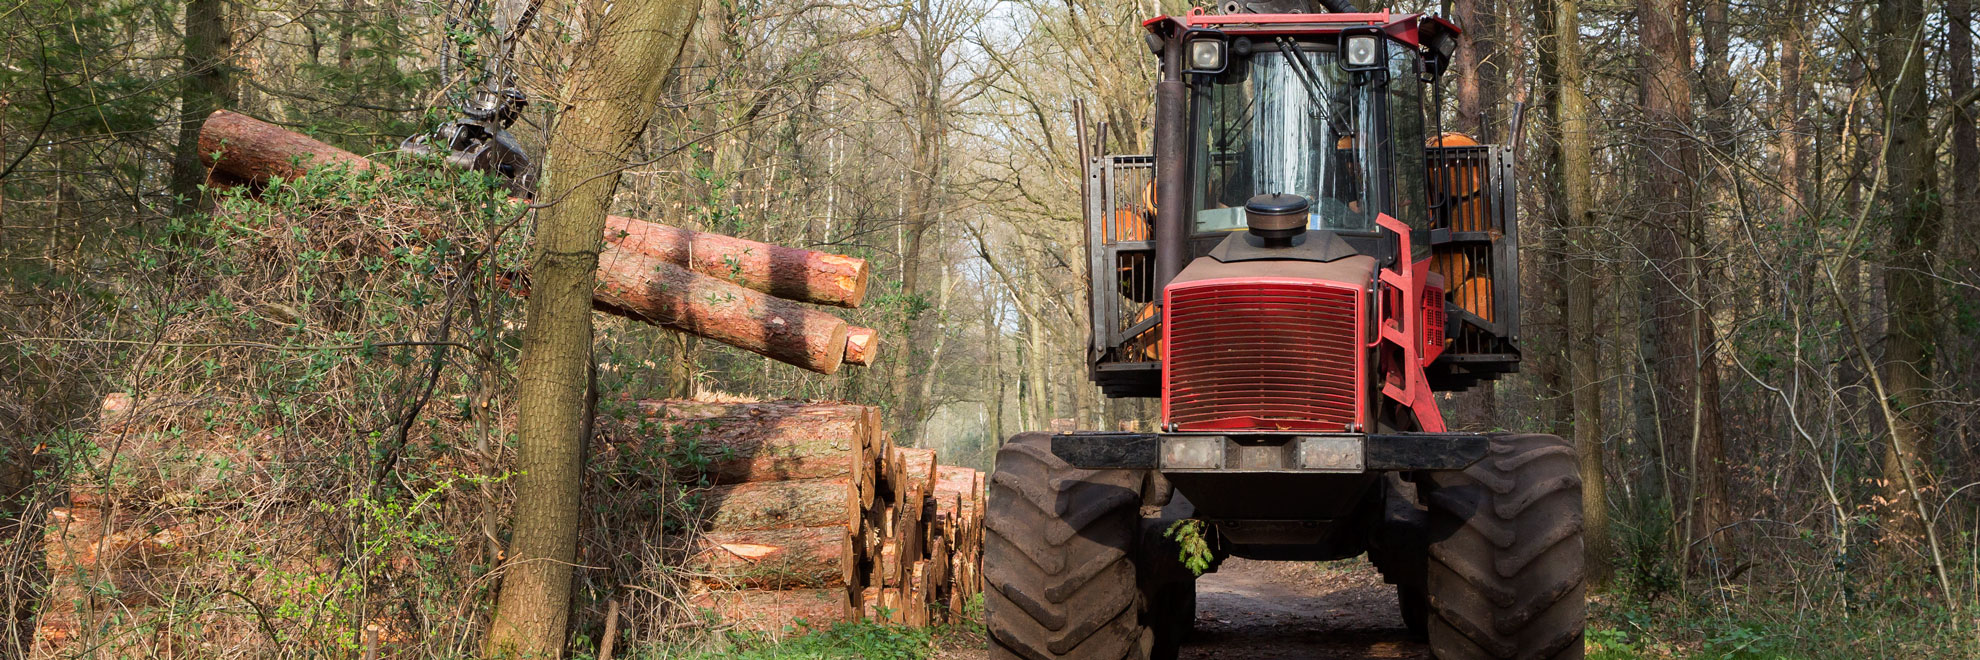 forestry with tractor